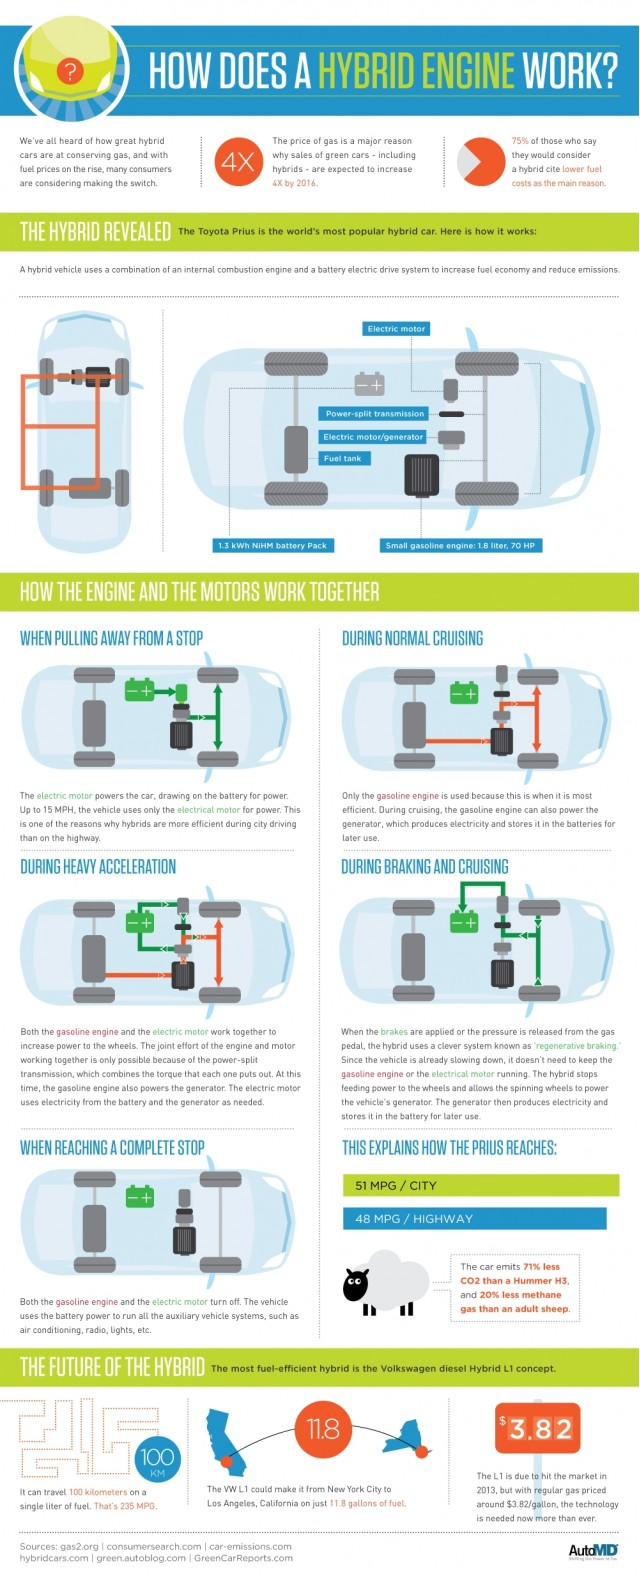 How A Hybrid Works, infographic used courtesy of AutoMD